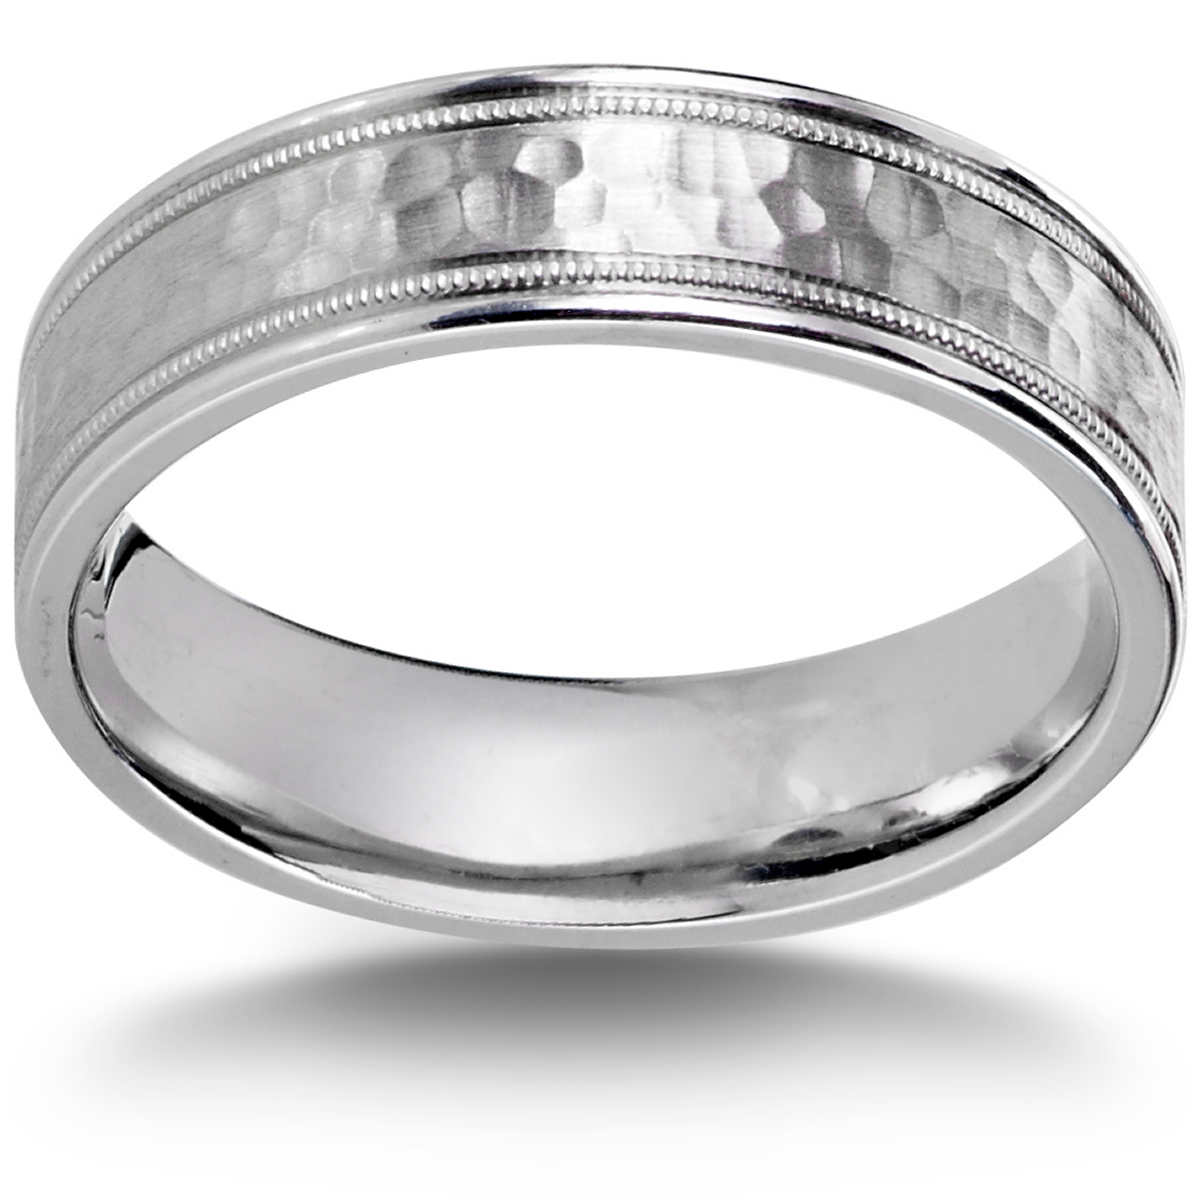 Costco Jewelry Mens Rings